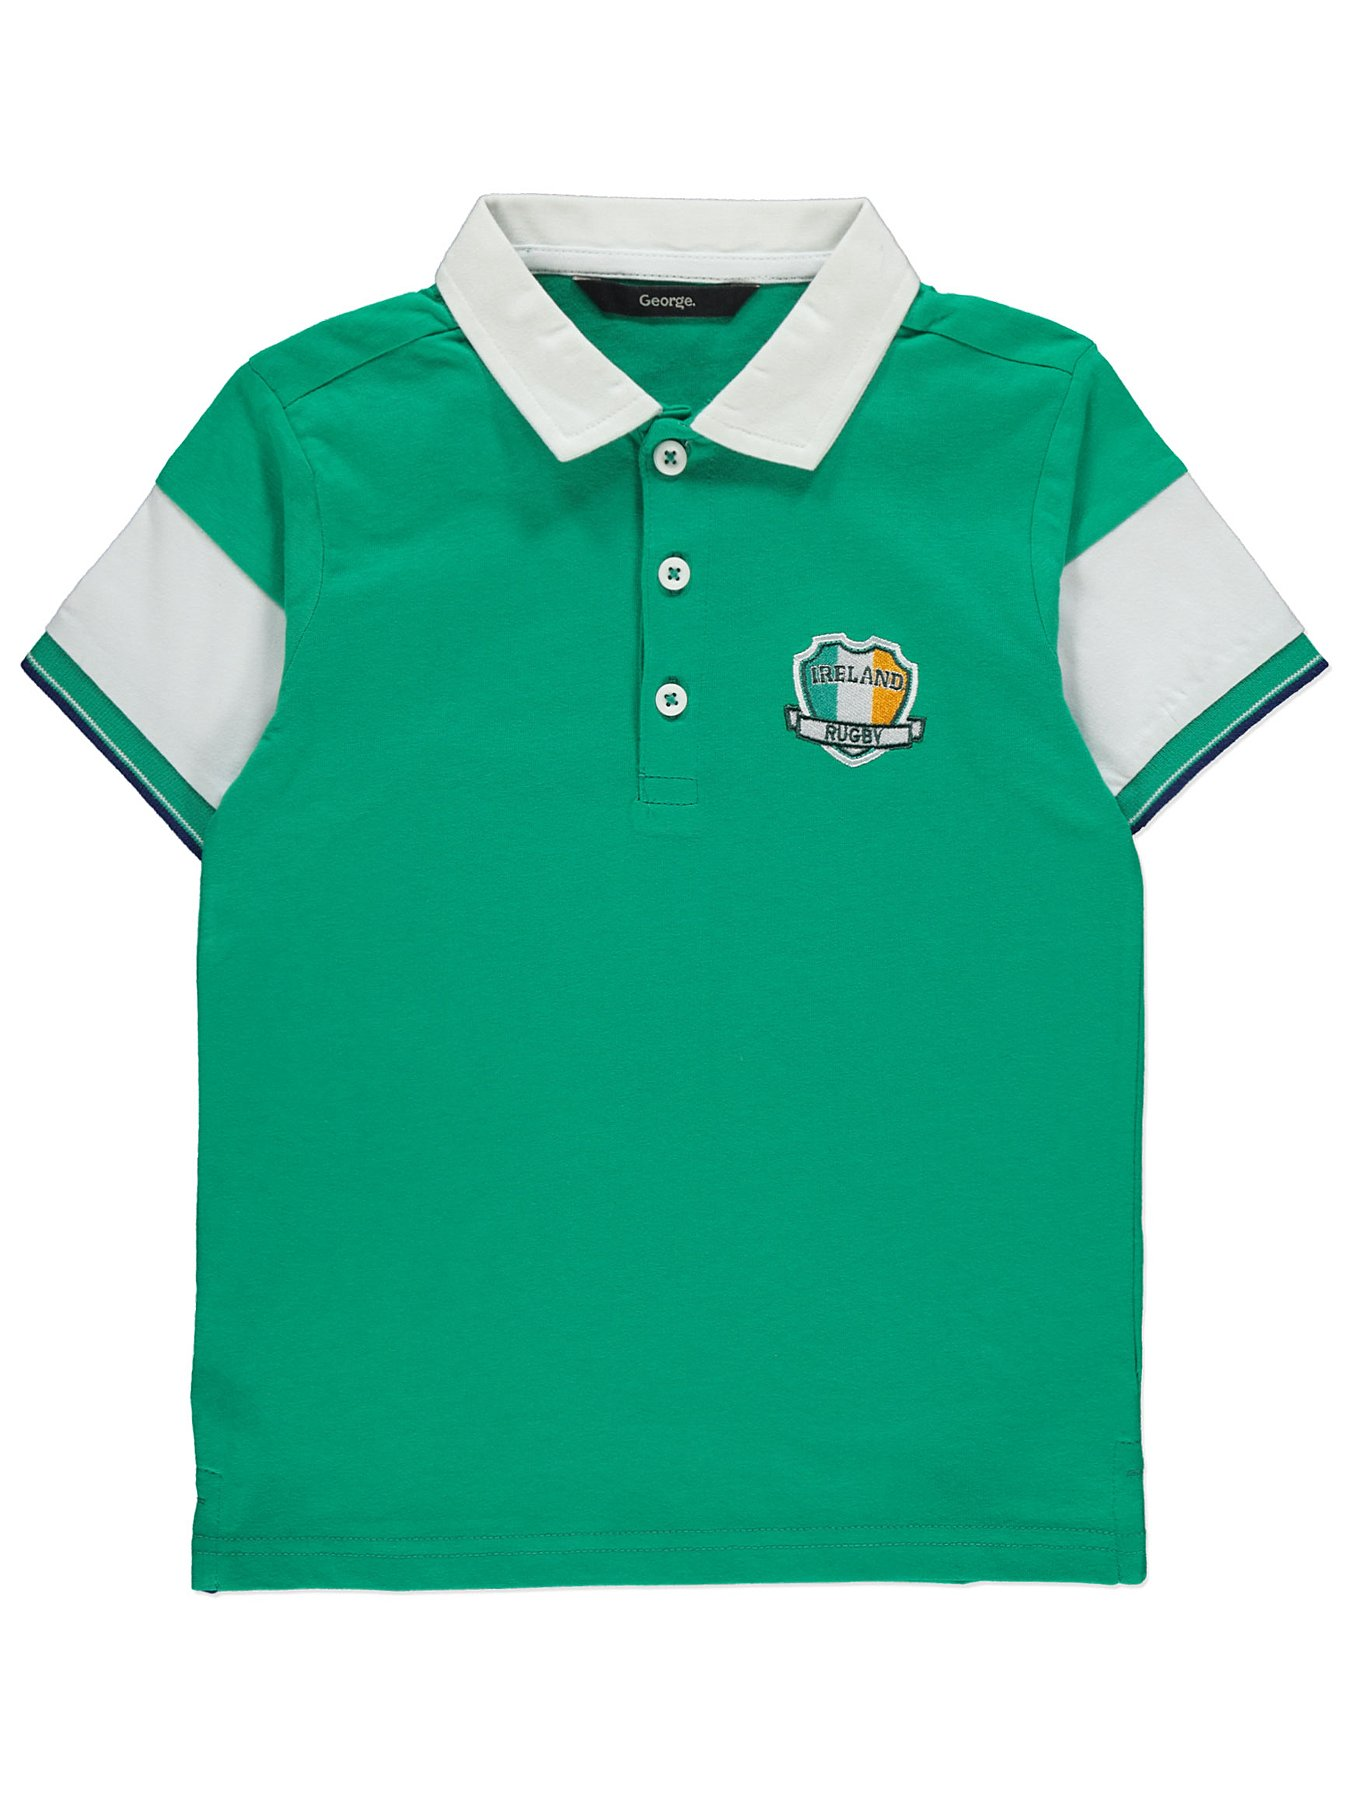 best service a64c8 d99f3 Ireland Rugby Polo Shirt